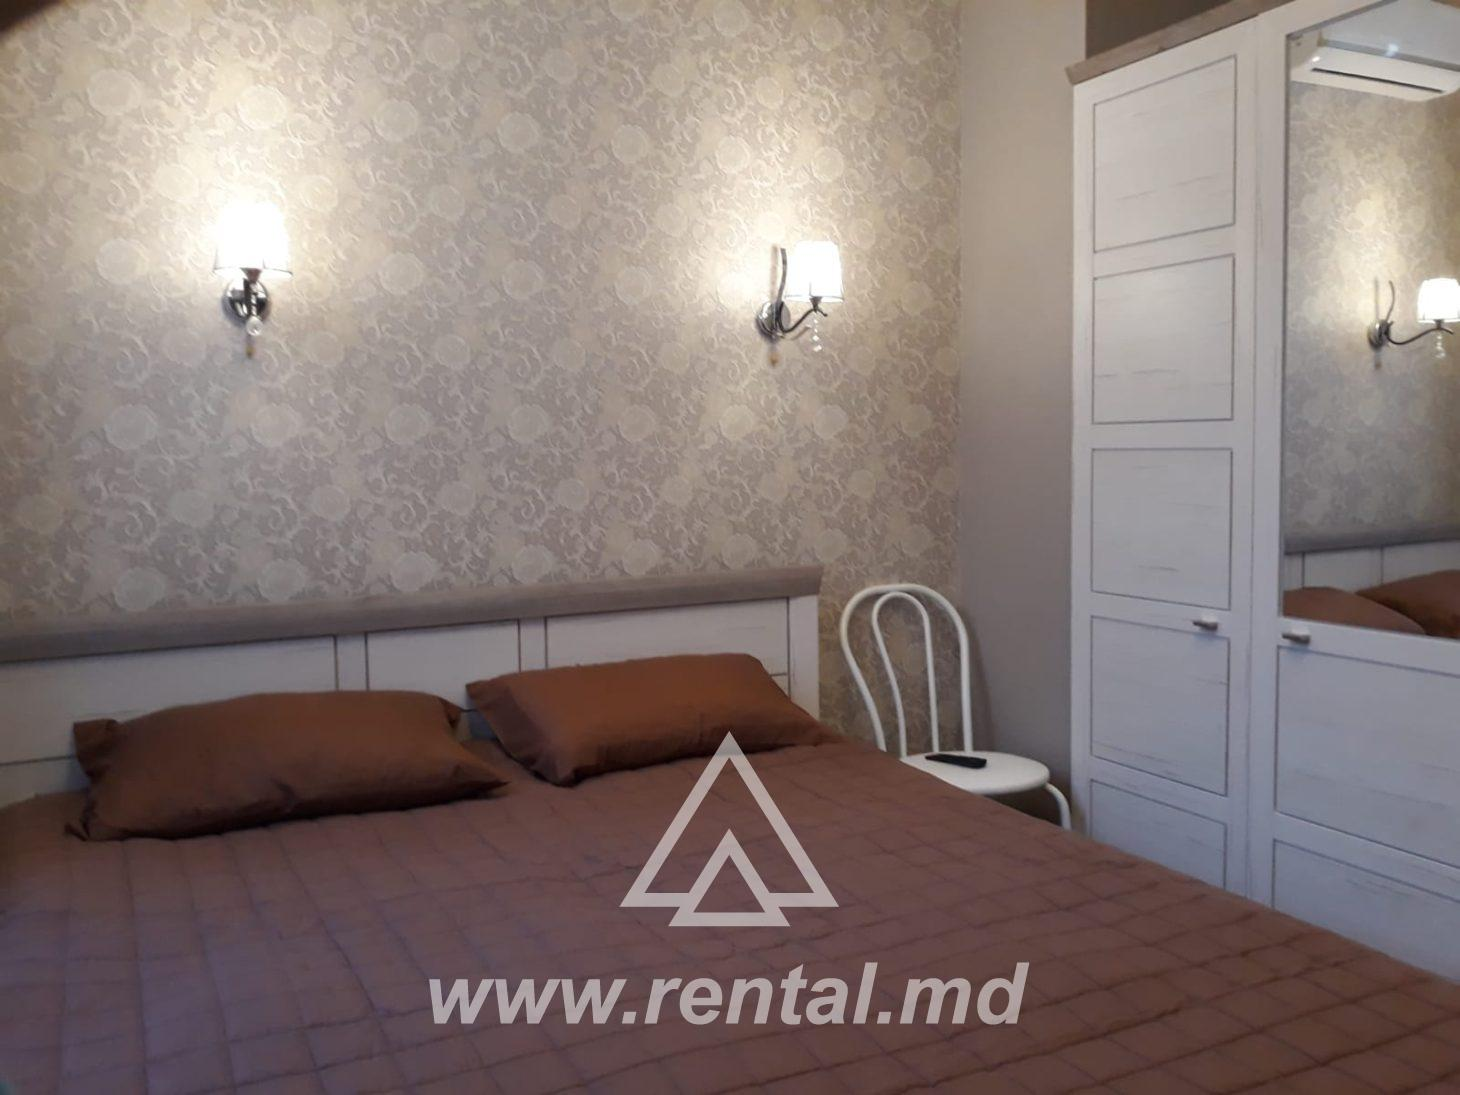 For rent 2 rooms apartment in the Center